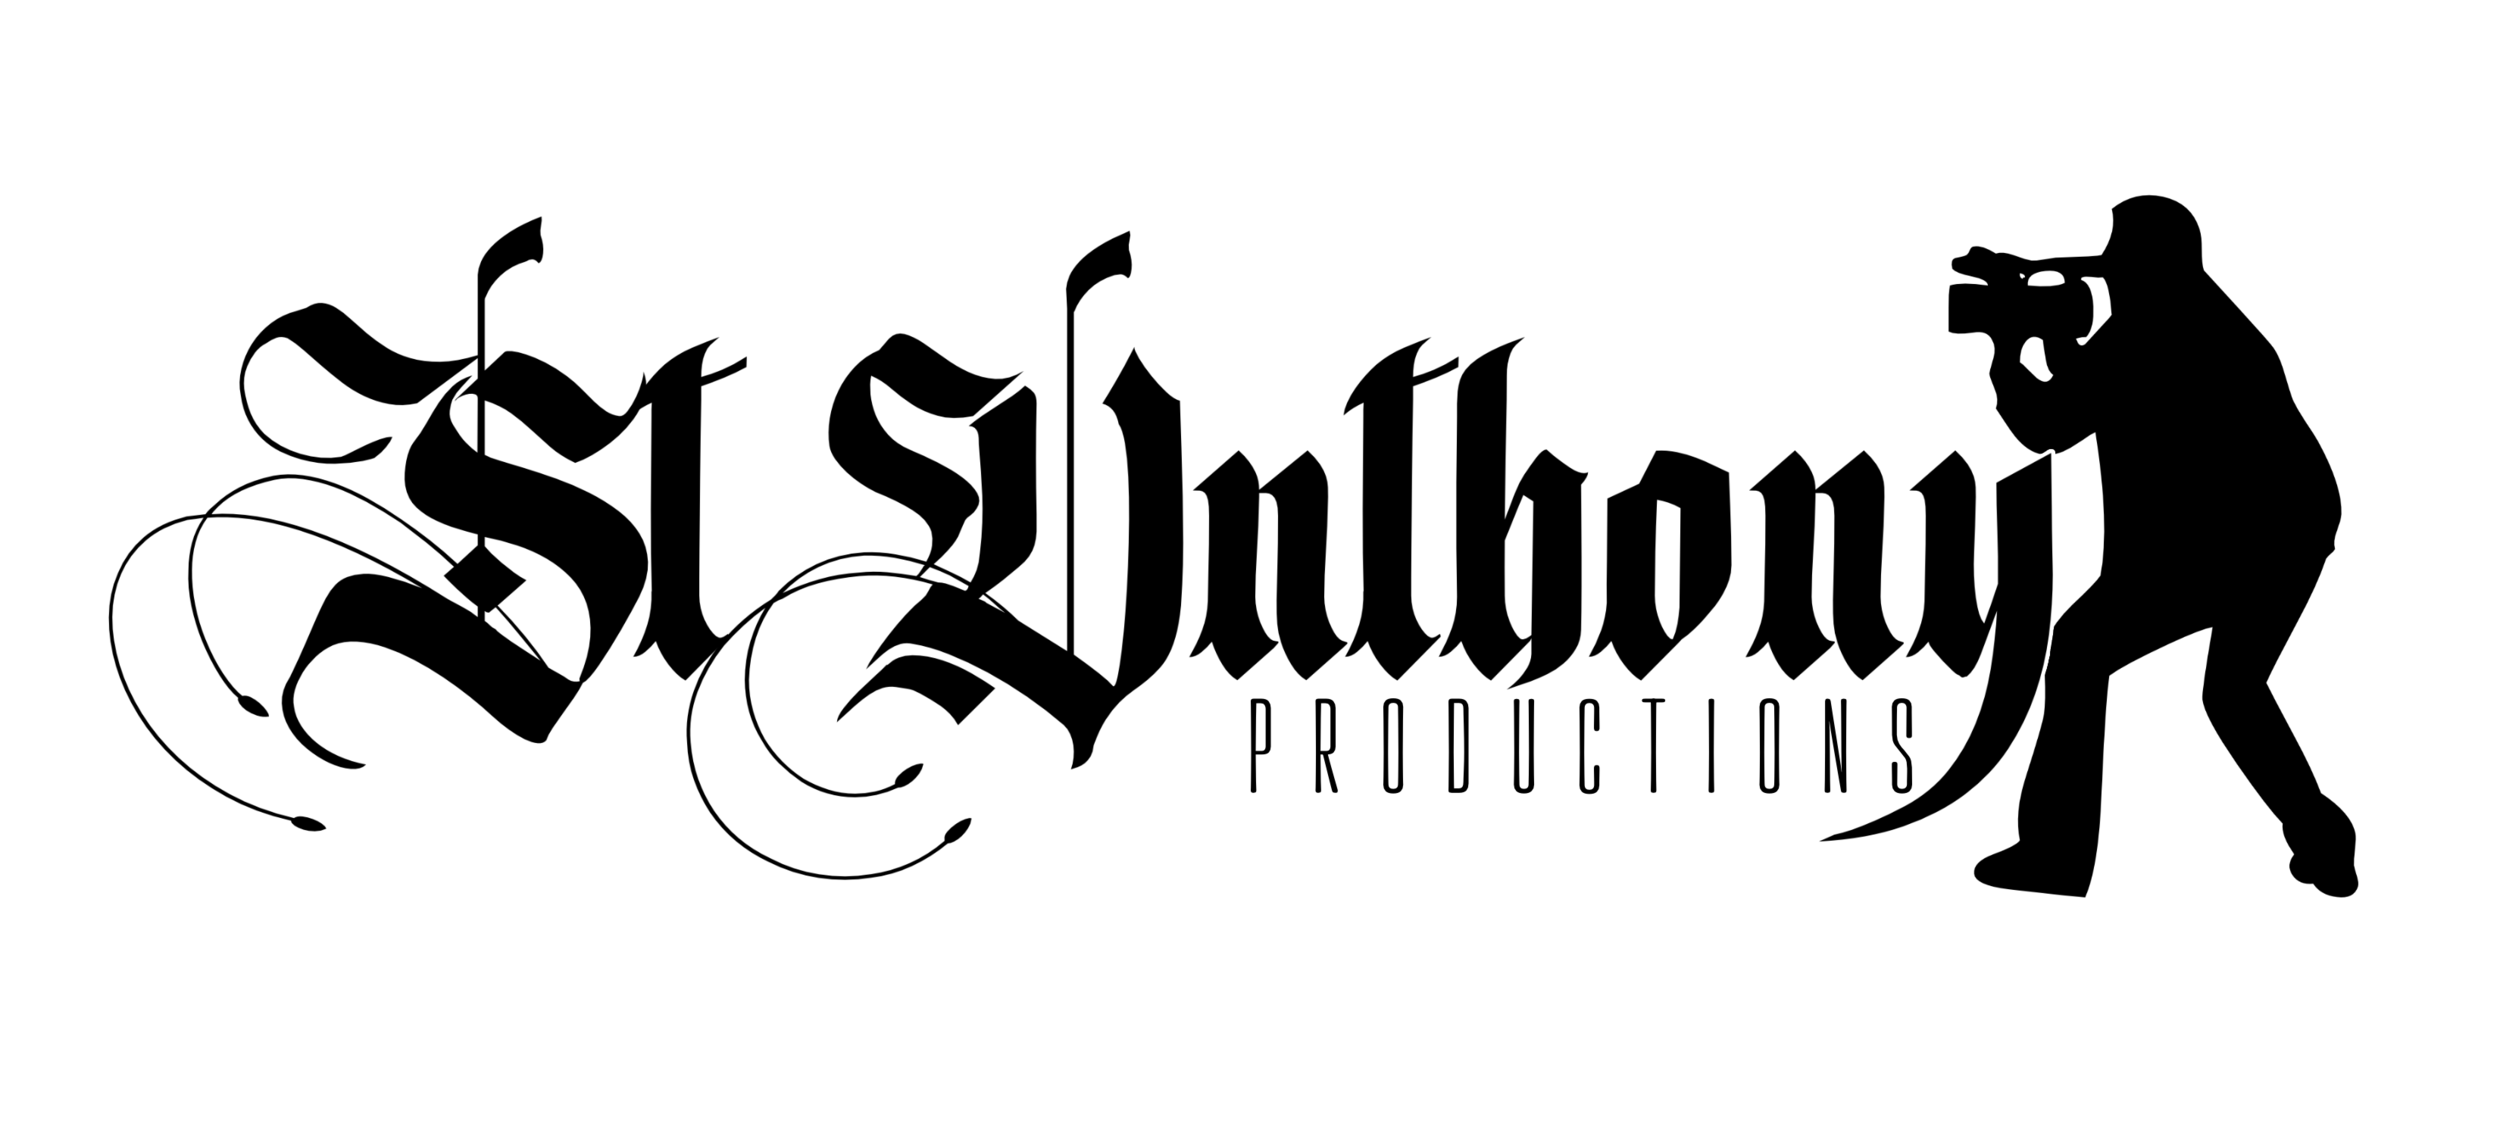 St.Vnthony Productions